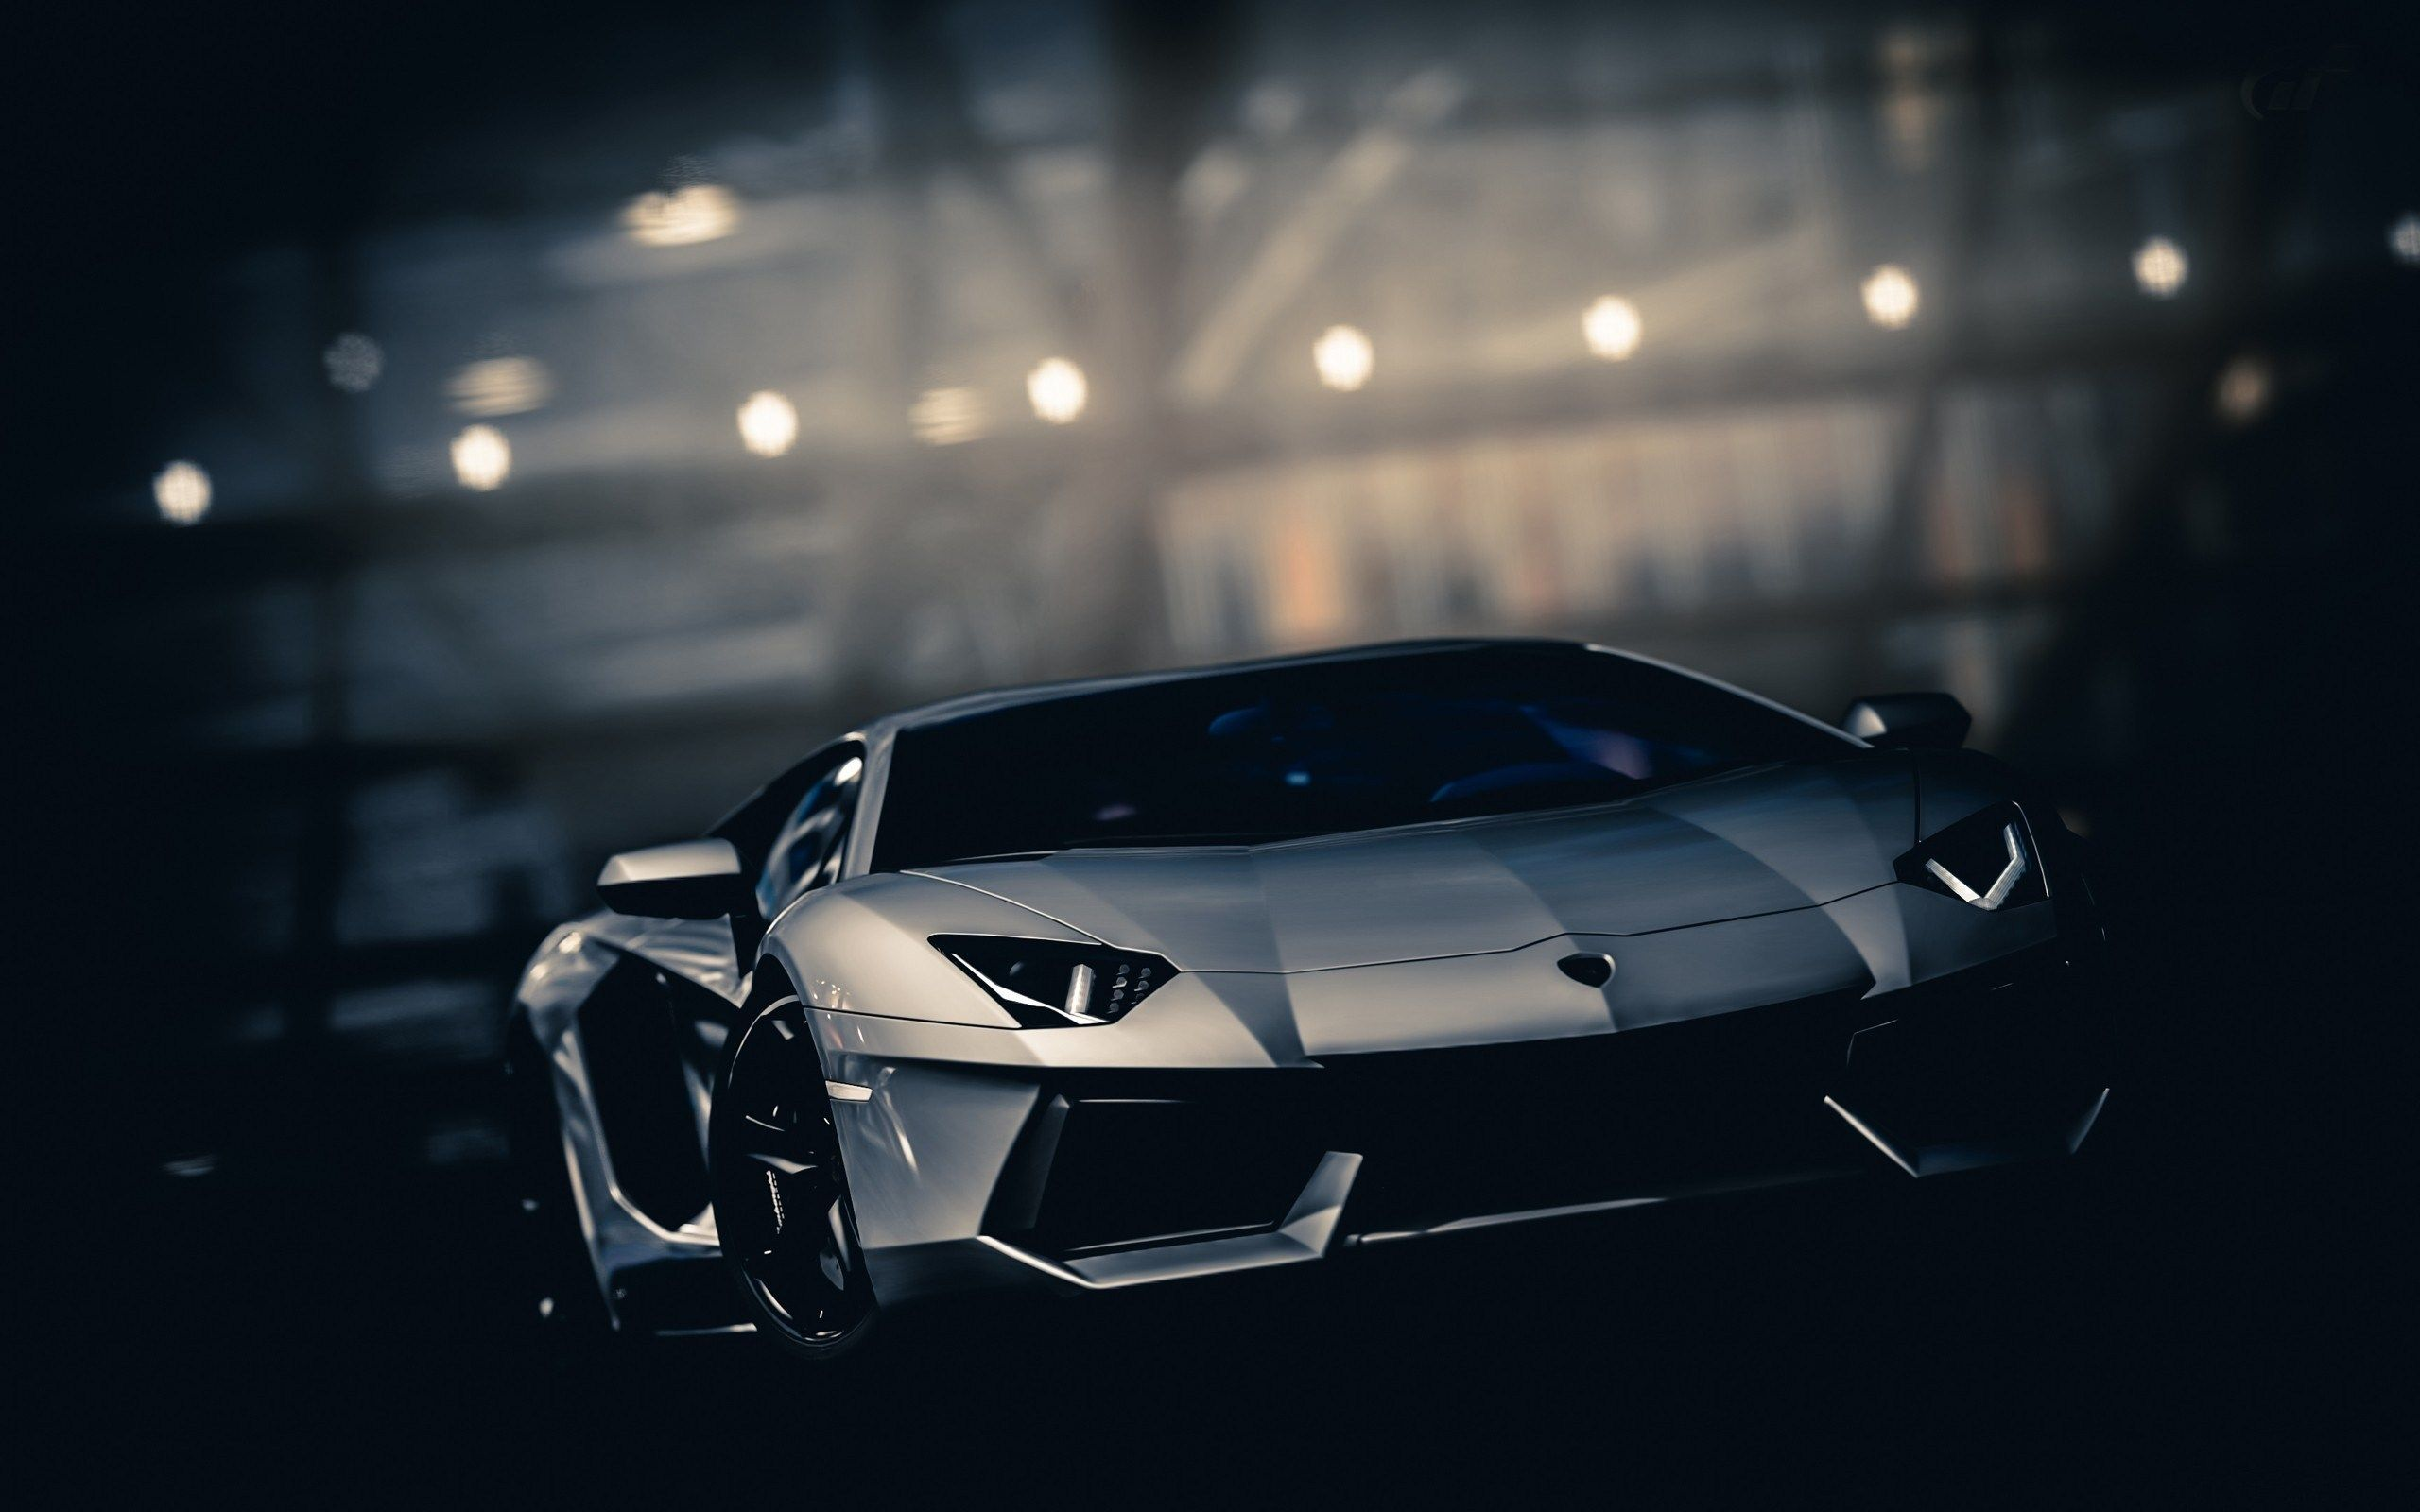 looking for lamborghini cars wallpapers stop searching because we have collected lamborghini cars wallpapers collection for you